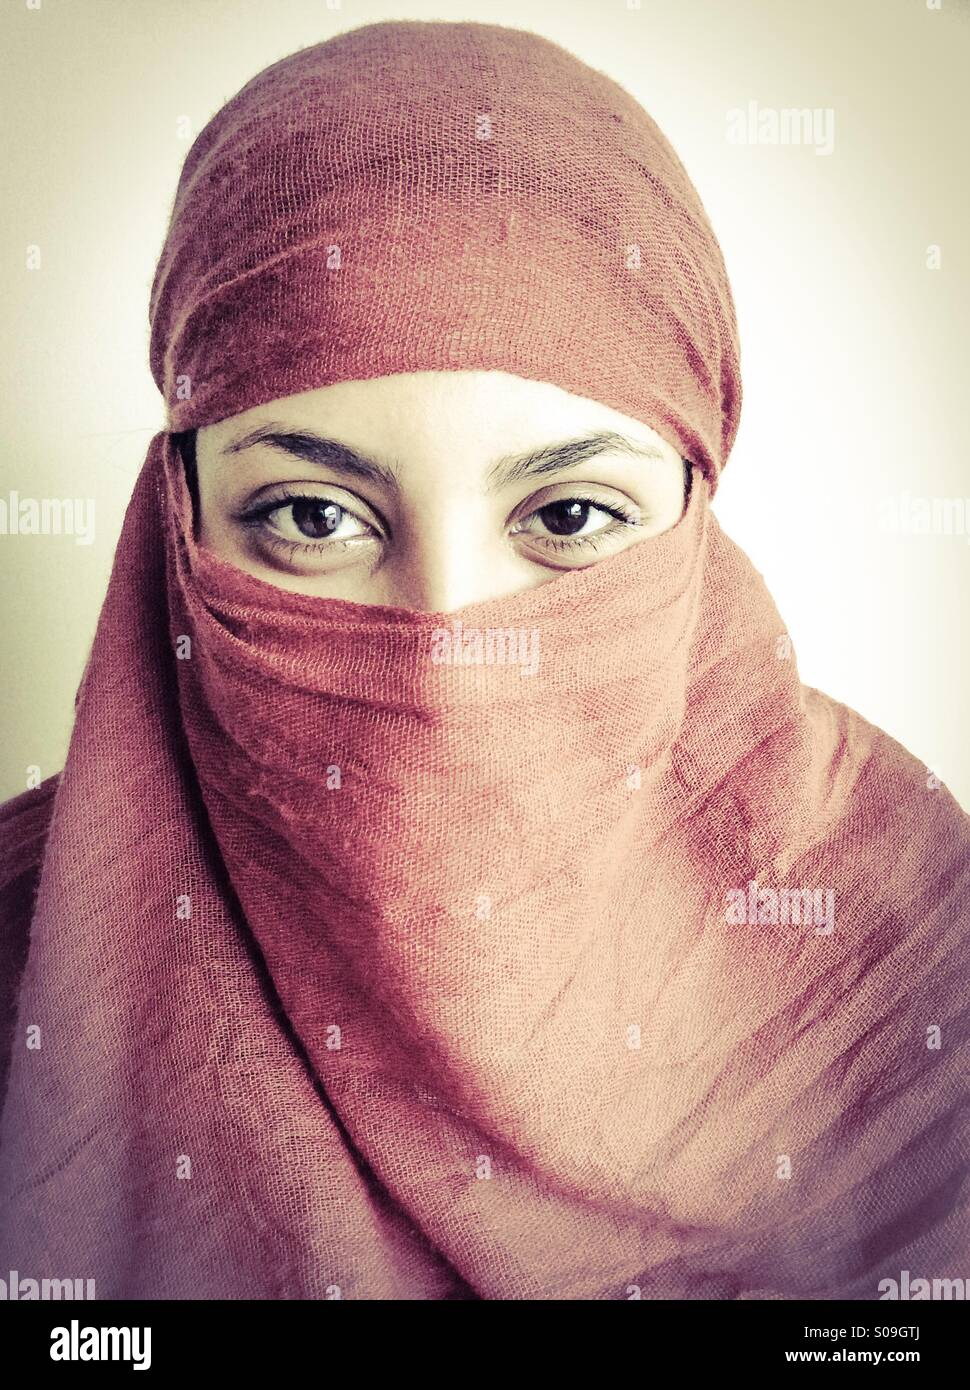 Arab Girl Smiling With Her Eyes Stock Image